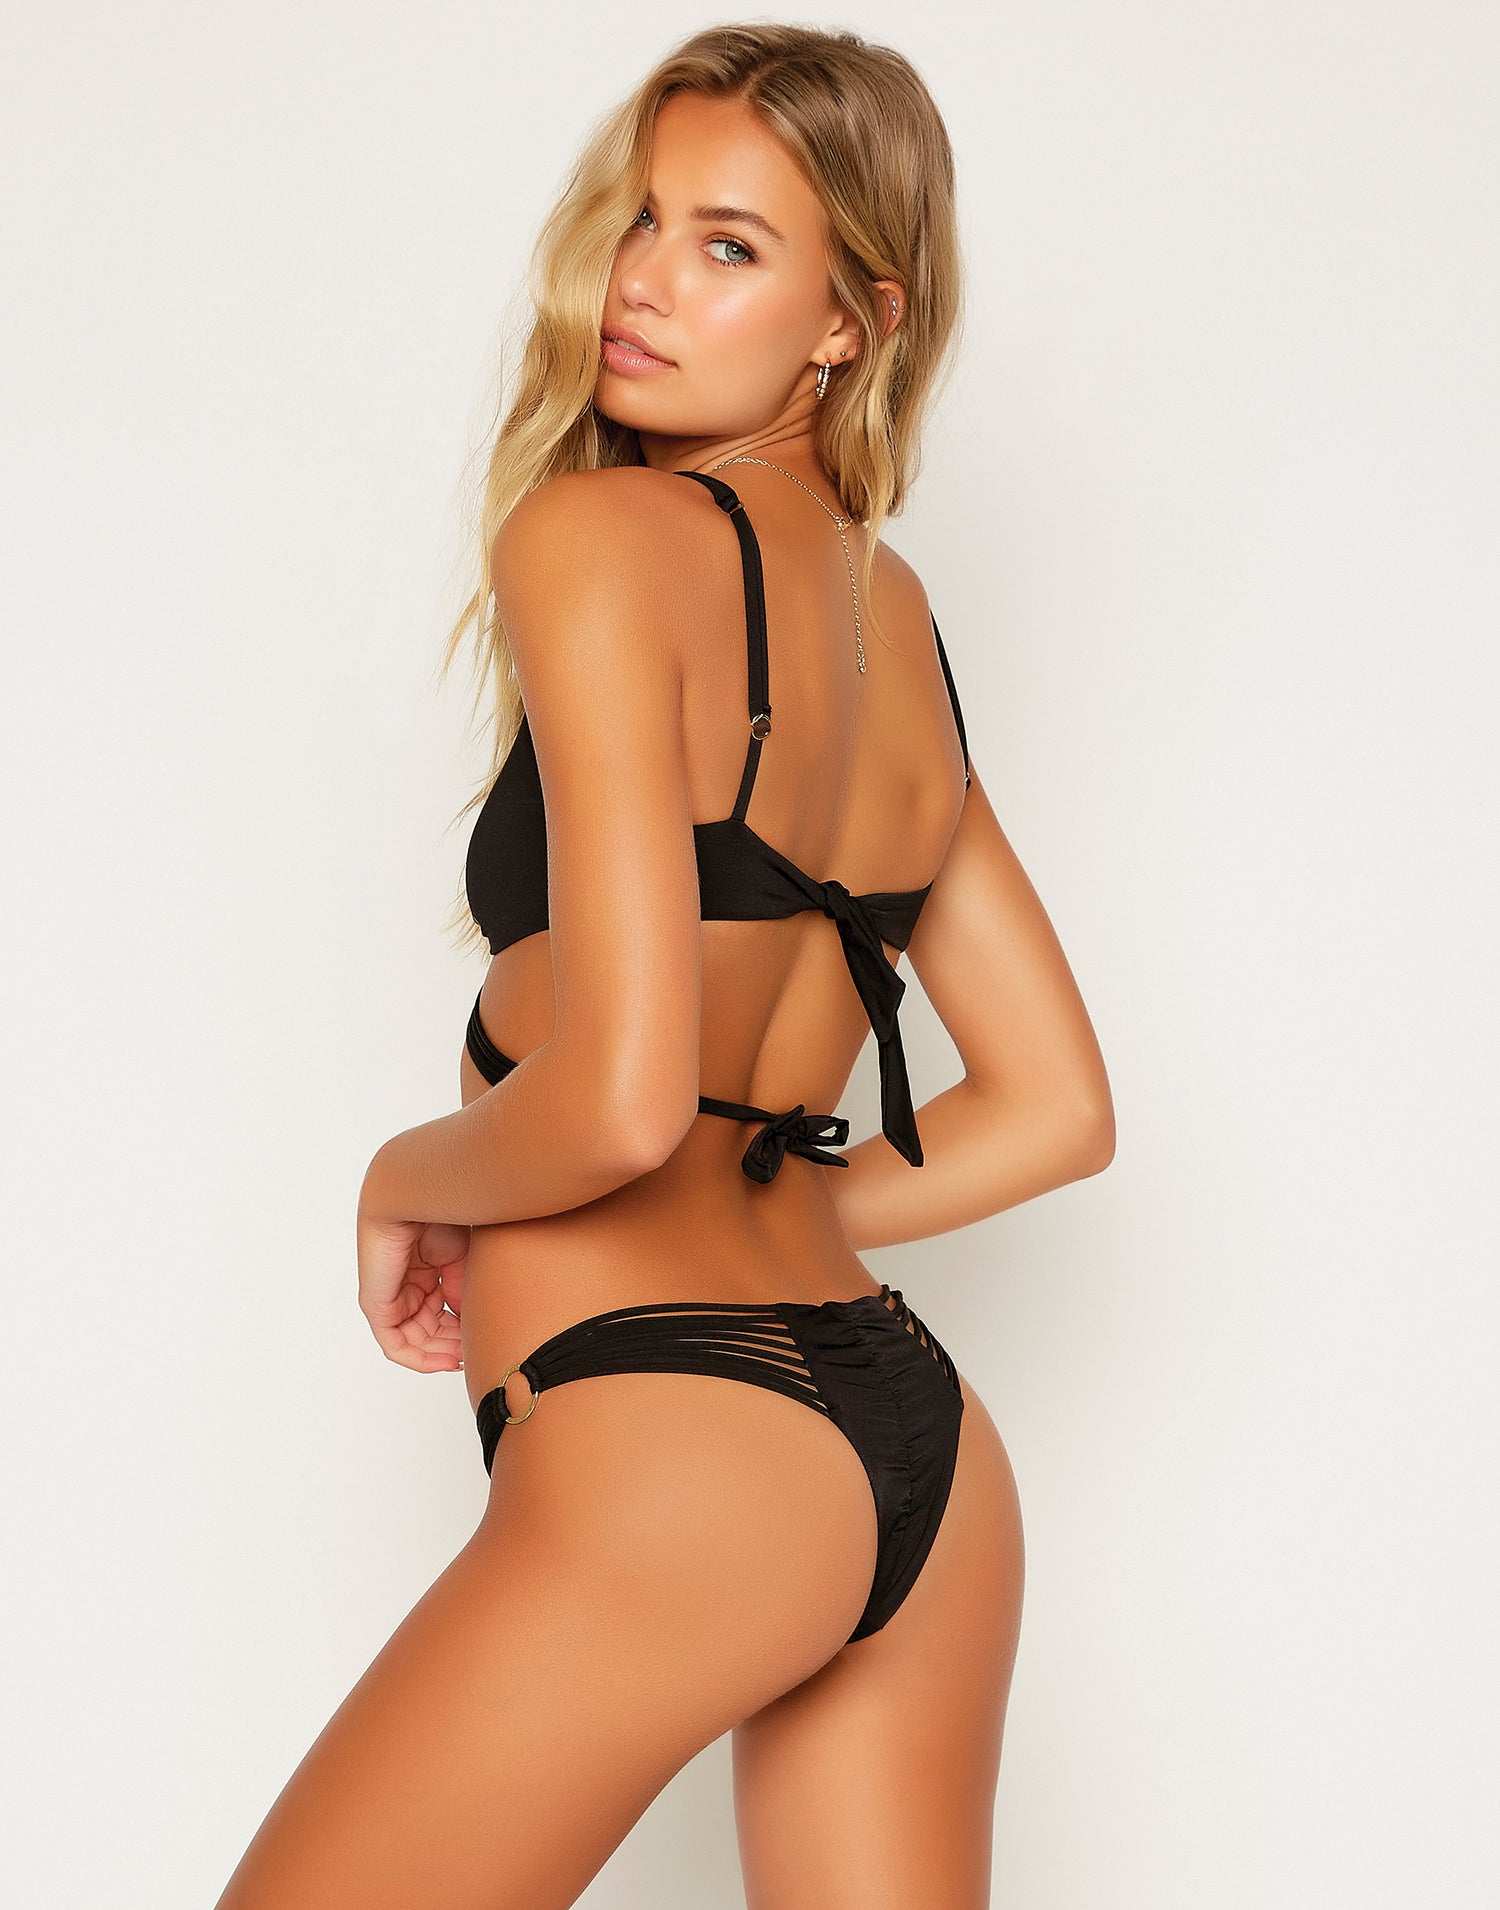 Indy Bralette Bikini Top in Black with Strappy Details - Back View